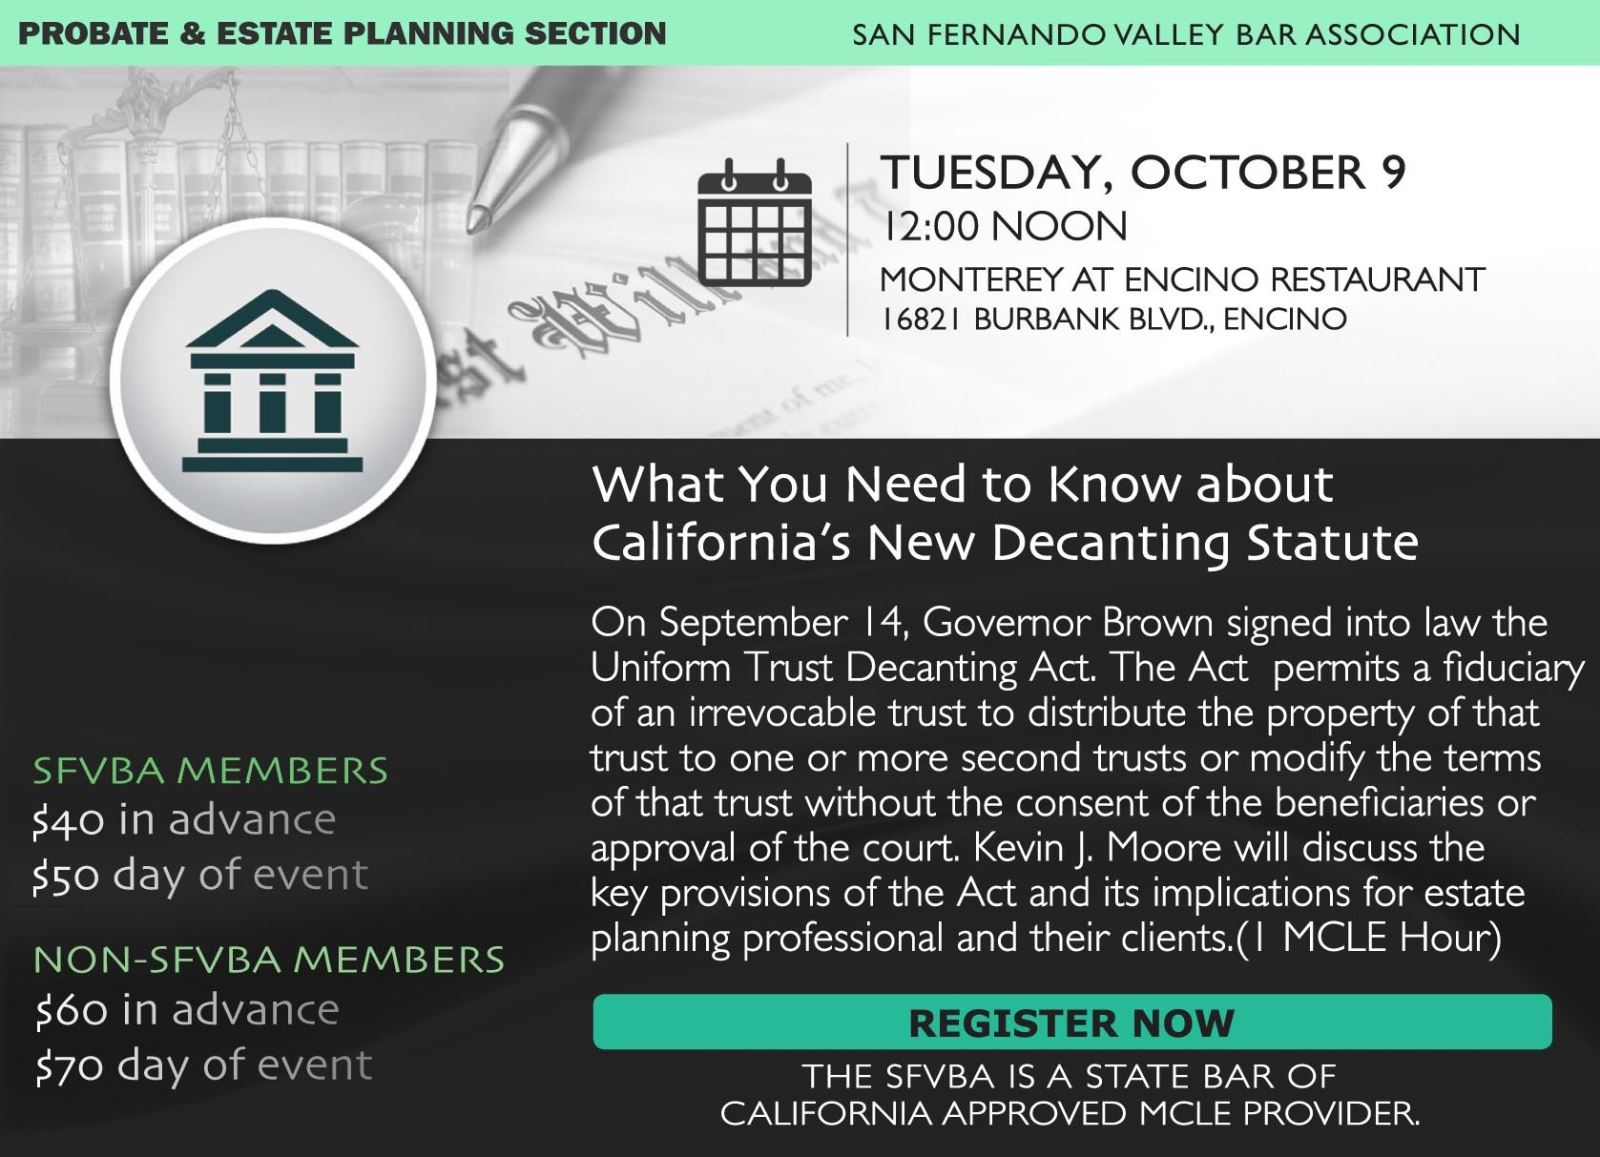 Sfvba Probate Estate Planning Section What You Need To Know About